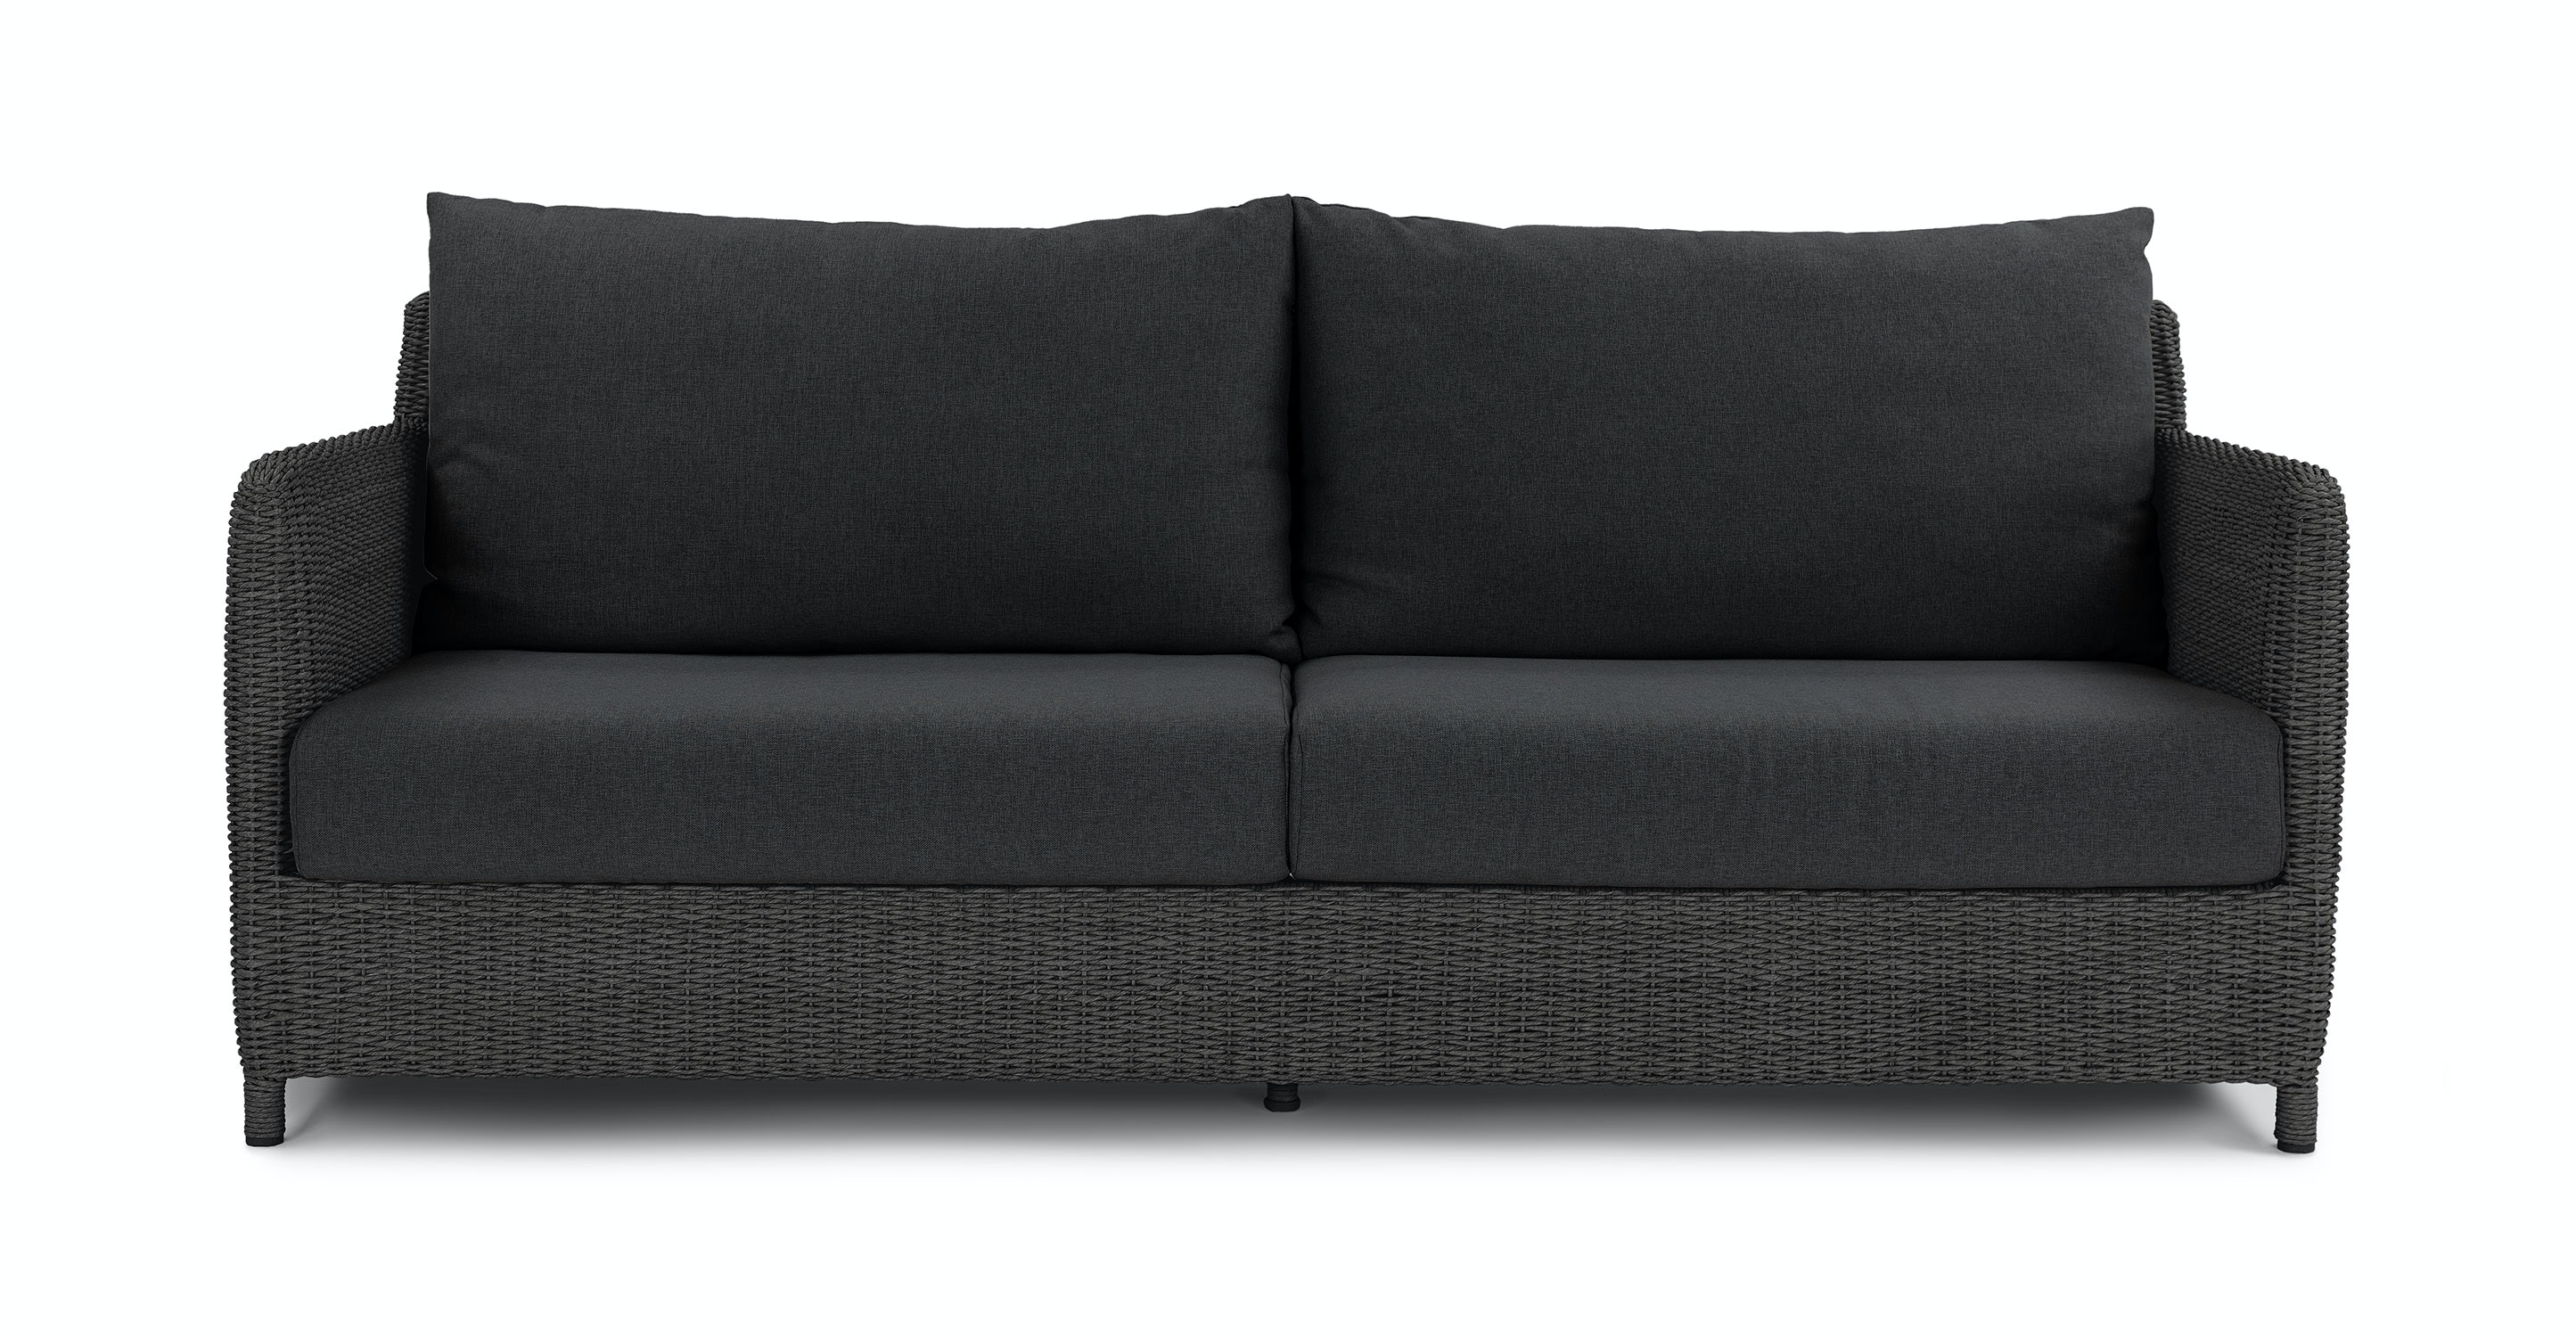 Calo Graphite Black Sofa   Sofas   Article | Modern, Mid Century And  Scandinavian Furniture